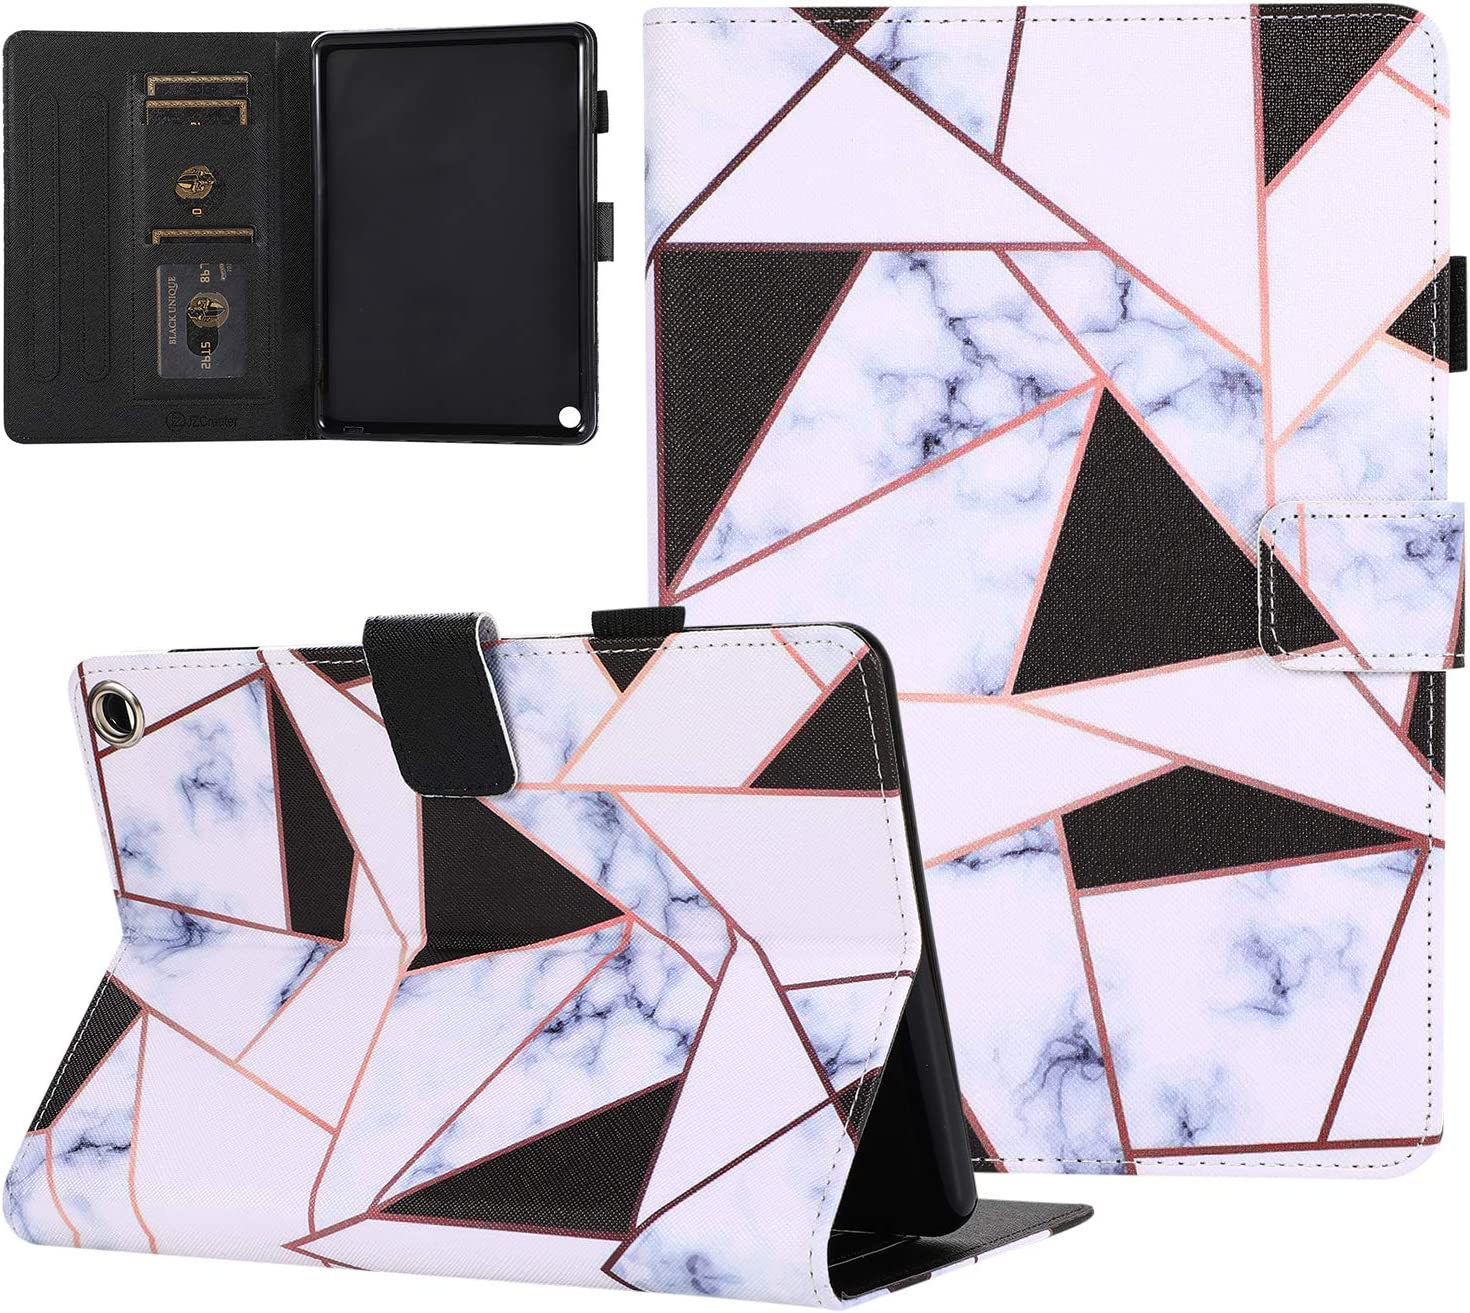 HD 8 2020 Tablet Finally popular brand Case Plus 2 Gene Only Limited time cheap sale Fit 10th